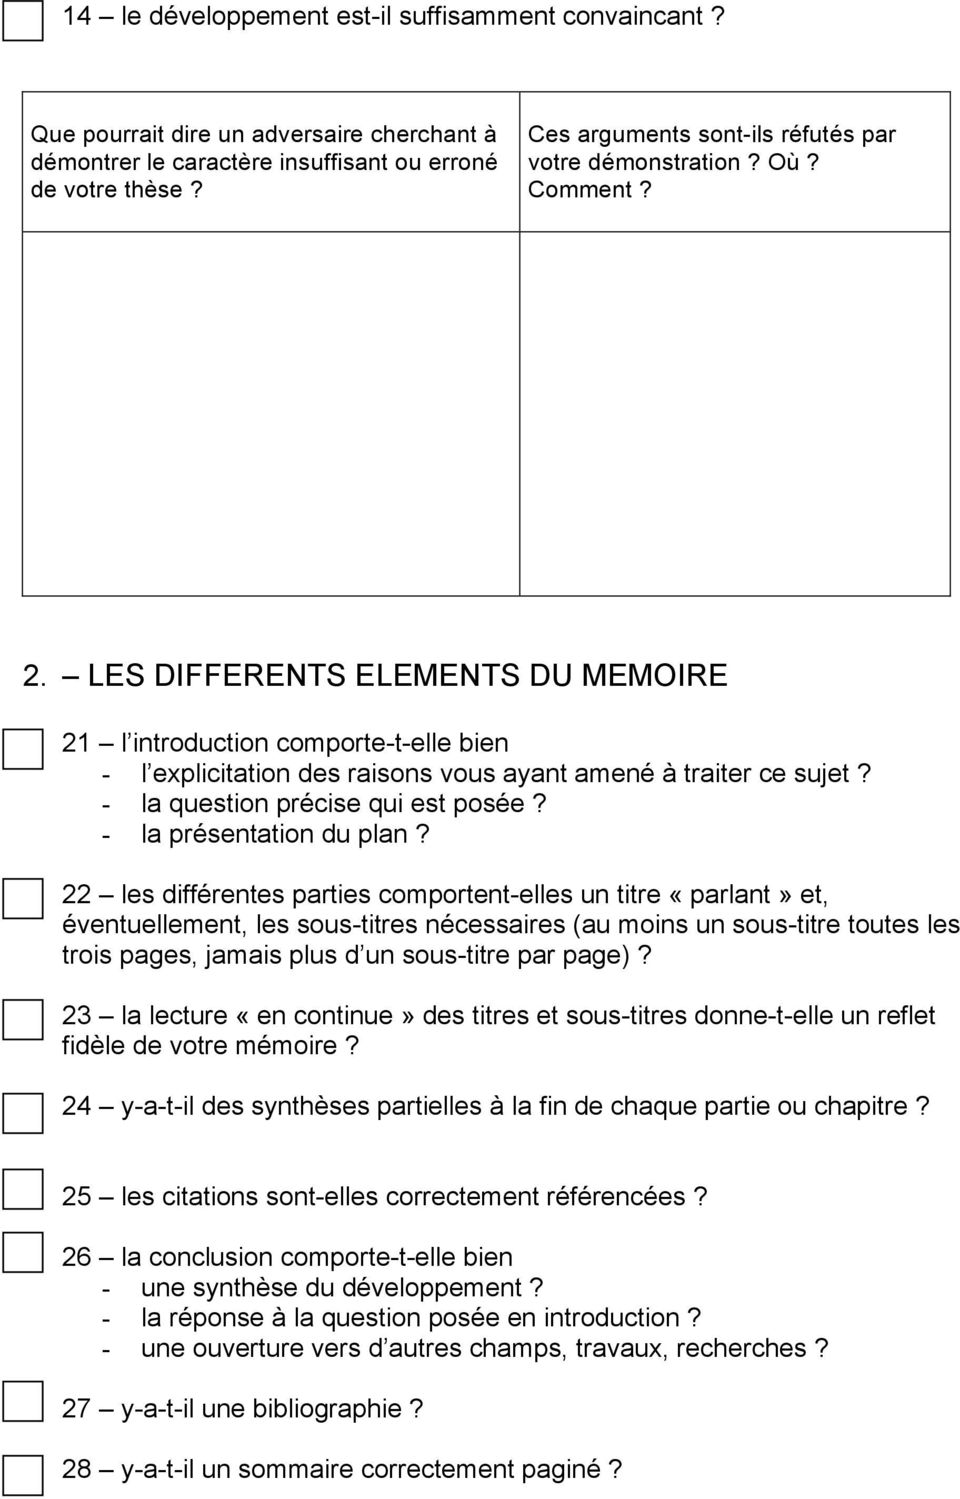 LES DIFFERENTS ELEMENTS DU MEMOIRE 21 l introduction comporte-t-elle bien - l explicitation des raisons vous ayant amené à traiter ce sujet? - la question précise qui est posée?